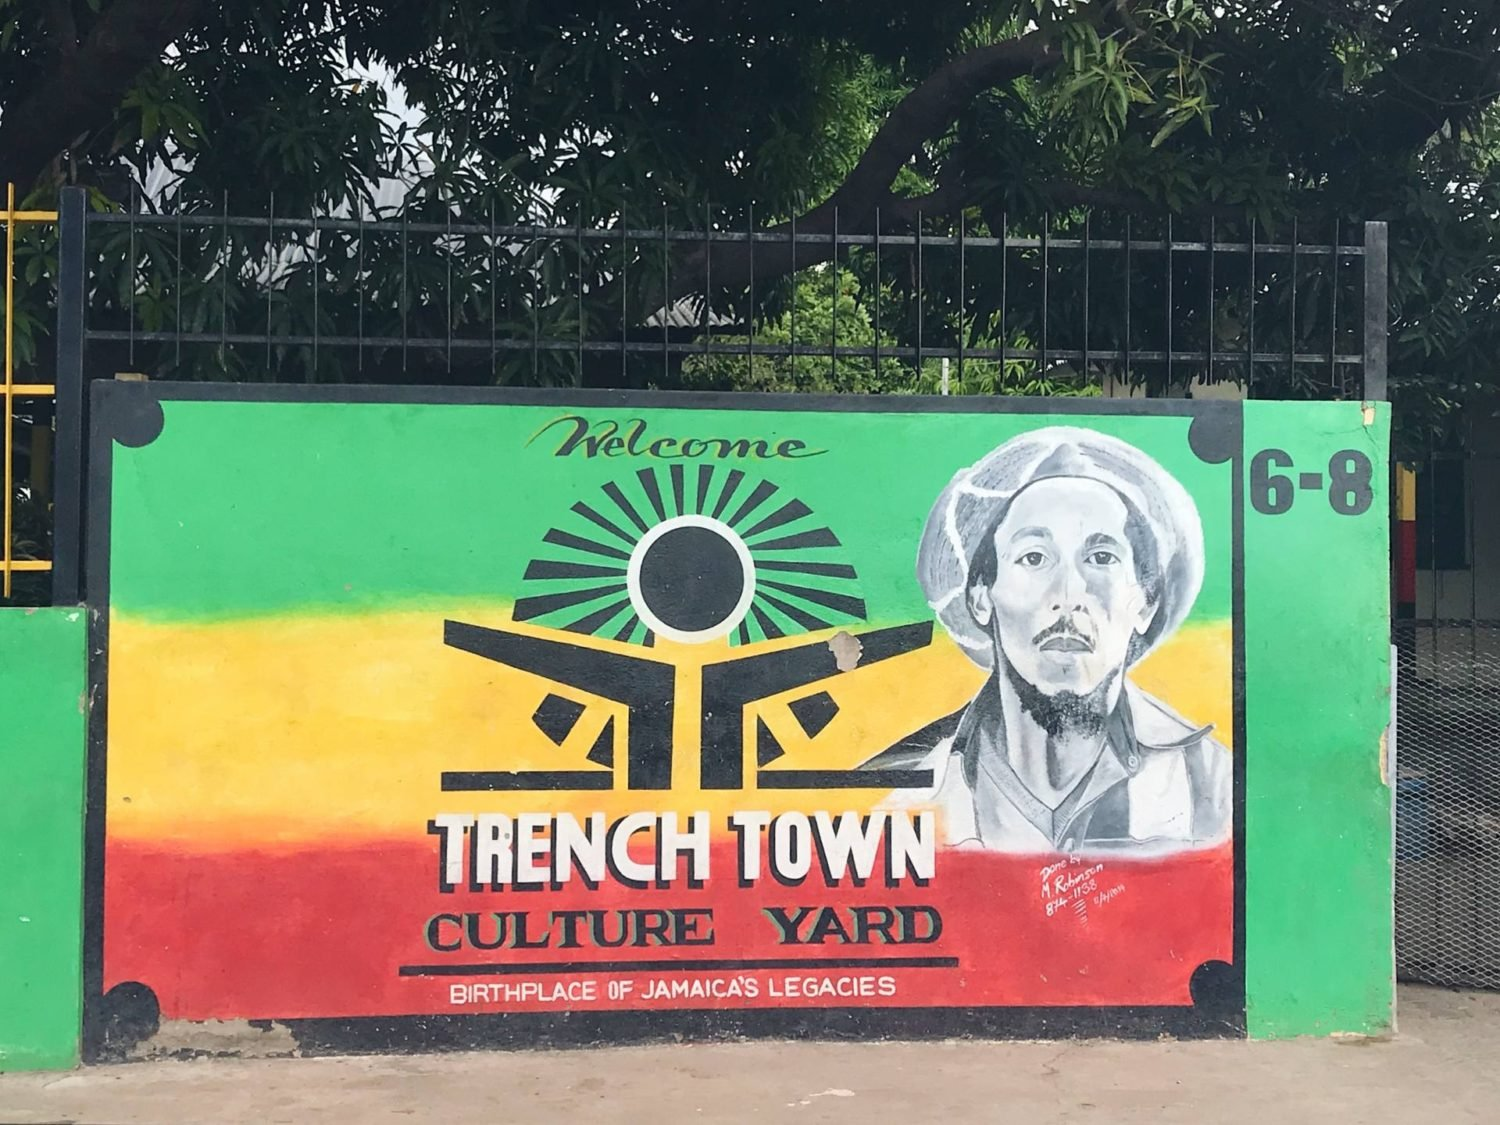 Top things to do in Jamaica: Trench Town Culture Yard